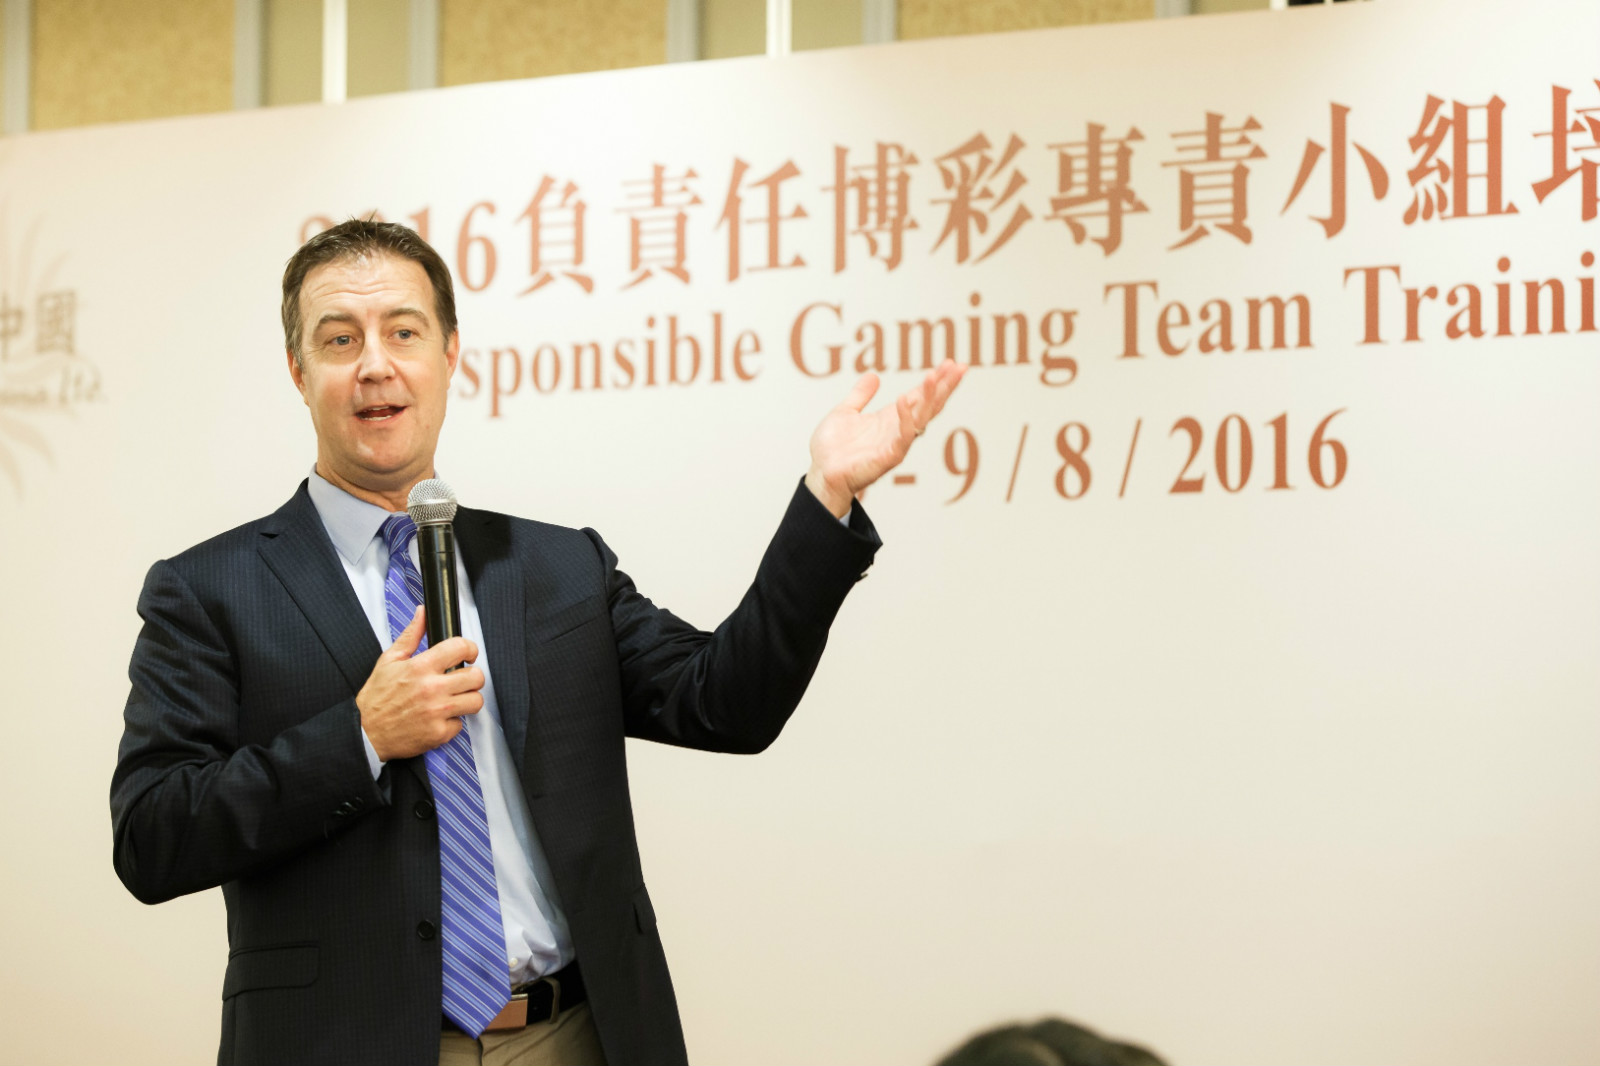 Sands China Organises Responsible Gaming Team Training